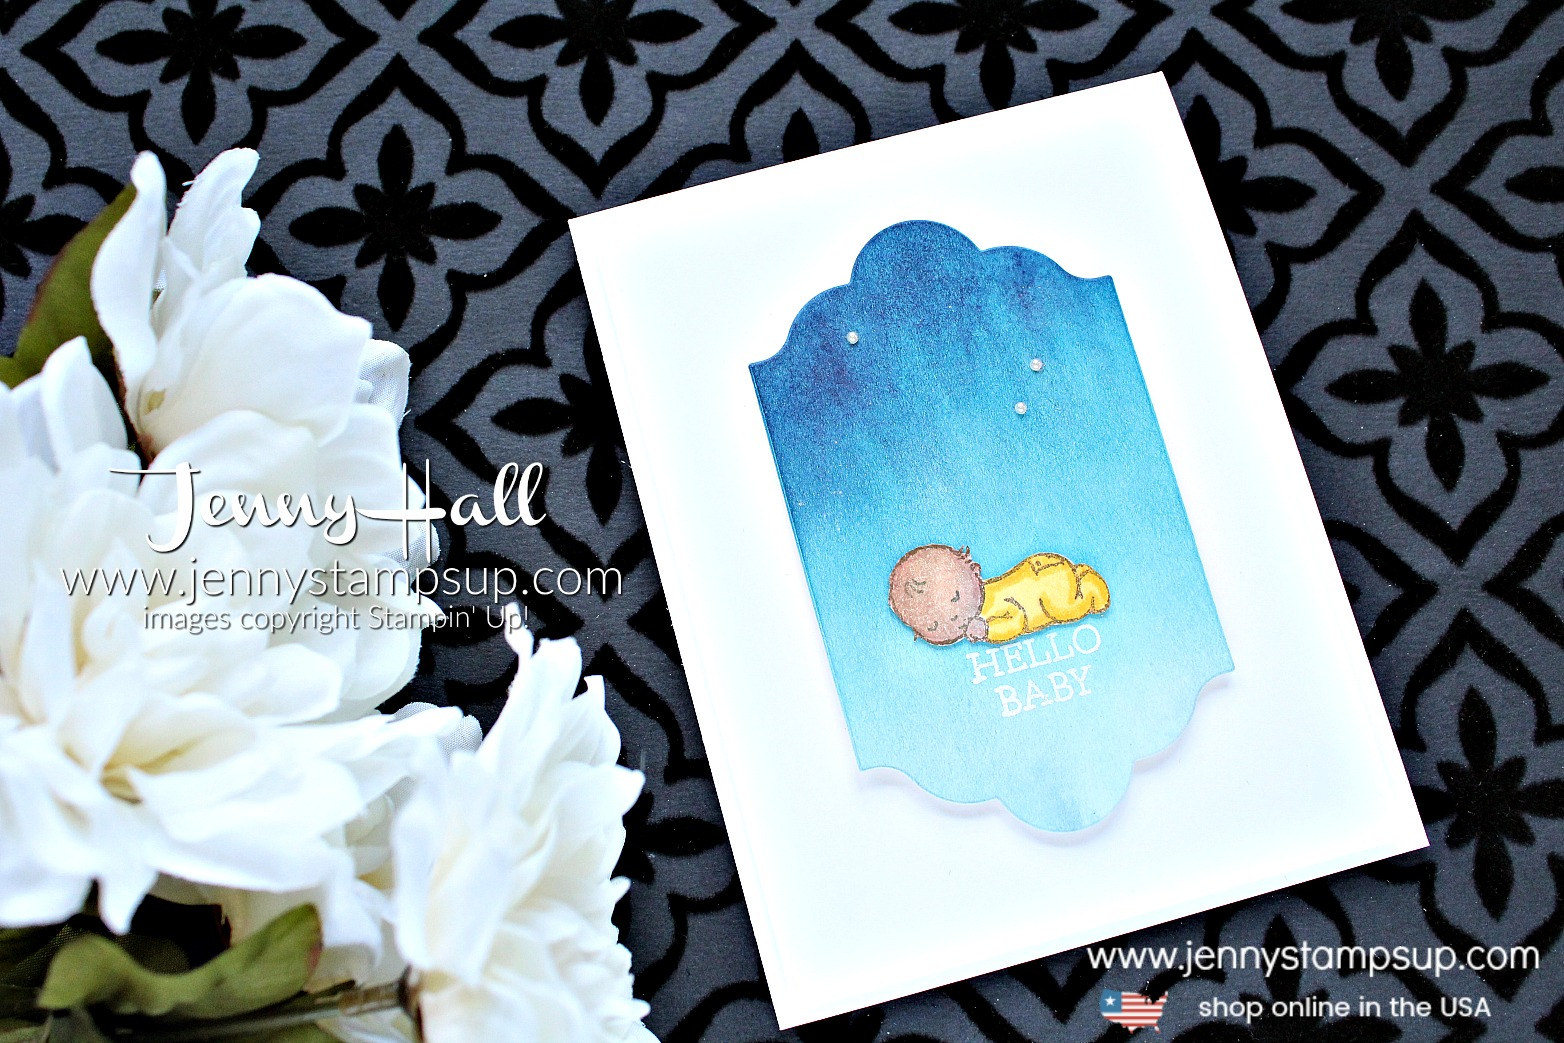 Creating an Ombre Watercolor Wash card by Jenny Hall at www.jennyhalldesign.com for #cardmaking #ombre #watercolorwash #moonbabystampset #stamping #stampinup #babystamp #jennyhall #jennyhalldesign #jennystampsup #lotsoflabelsframelits #handmadecard #lifestyle #watercolorpainting #crafts #paperembossing #videotutorial #youtuber #craftyyoutuber